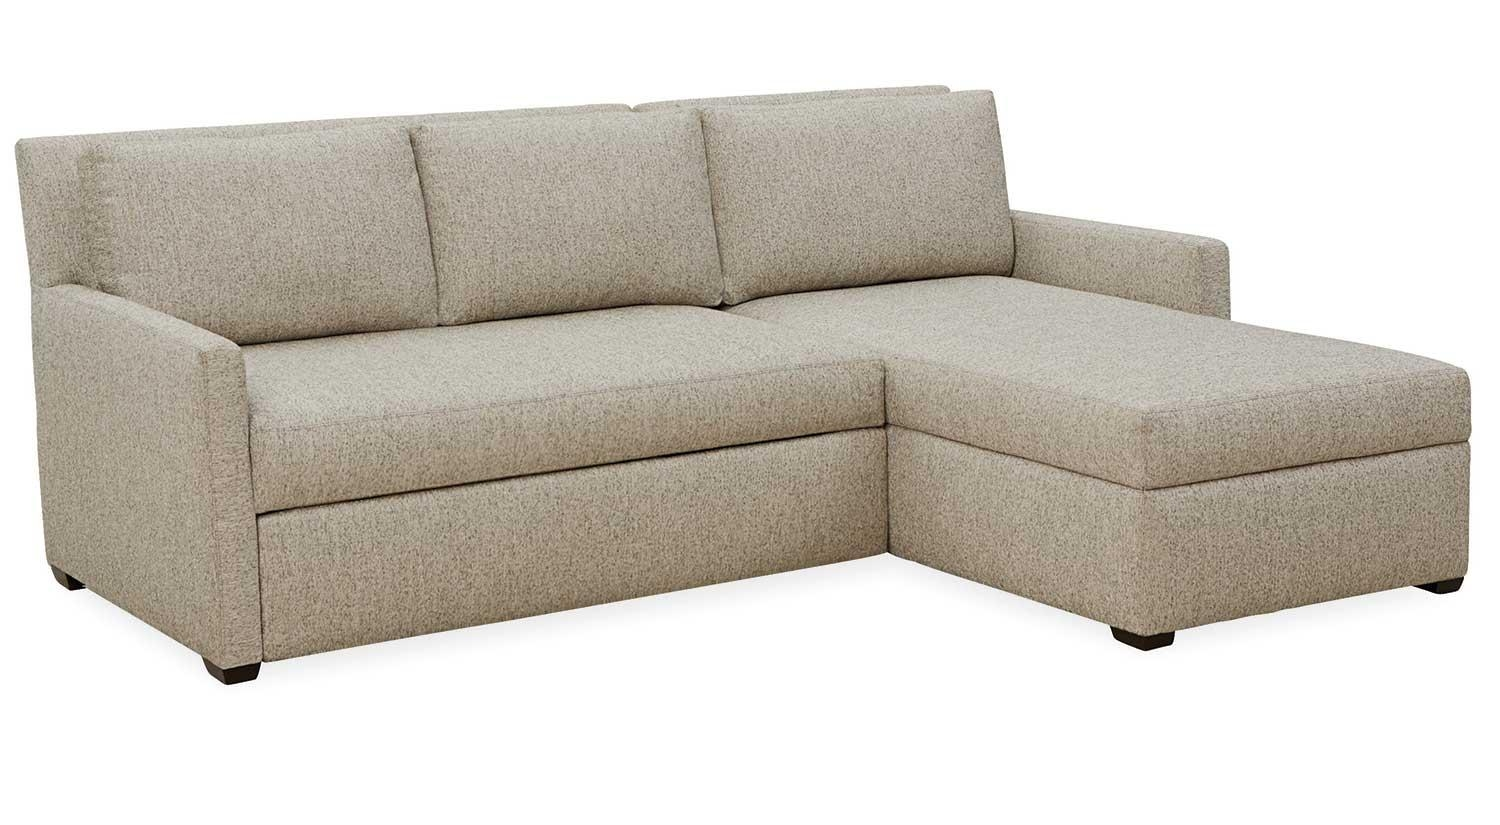 Circle Furniture – Sleeper Sofa | Sectional Sleepers | Circle In Austin Sectional Sofa (View 7 of 15)